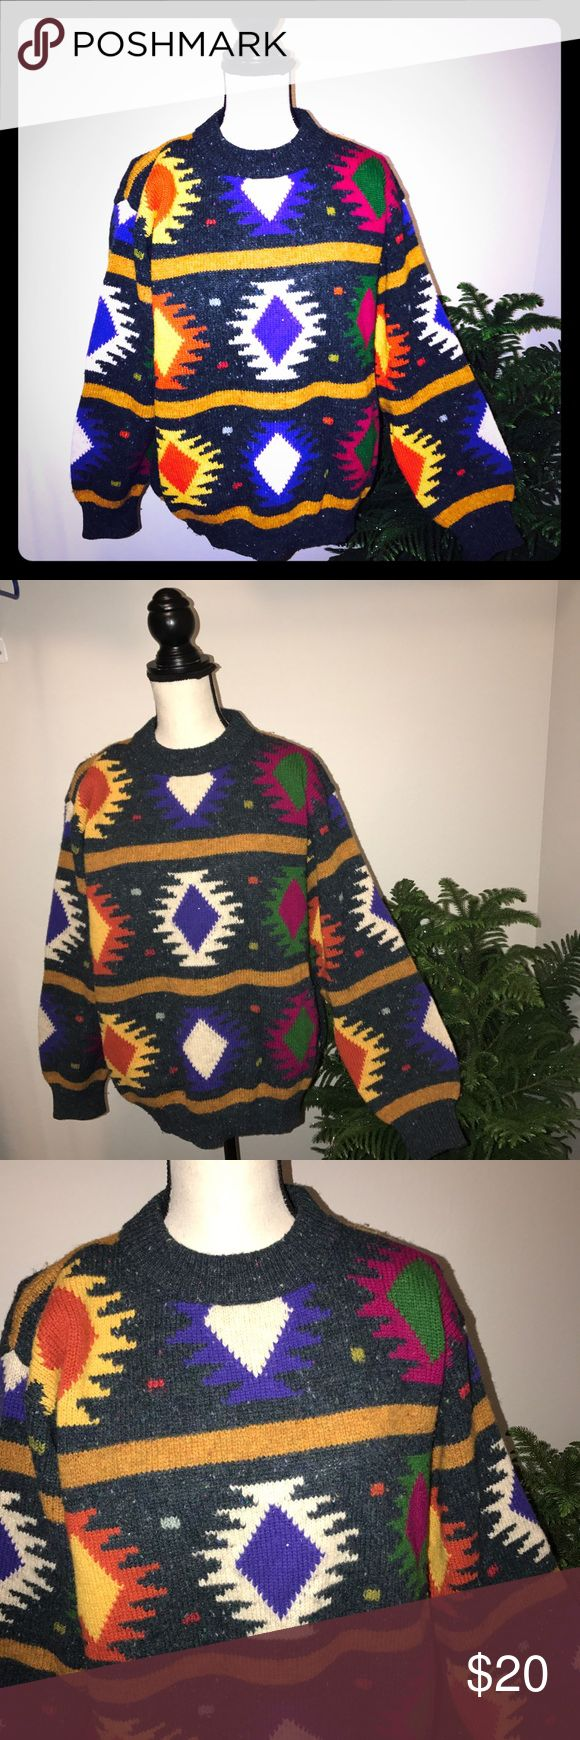 United Colors of Benetton Shetland wool sweater United Colors of Benetton Shetland wool sweater. Excellent vintage condition and perfect colors for the holidays. Very festive and fun sweater. Very warm and made in Italy. United Colors Of Benetton Sweaters